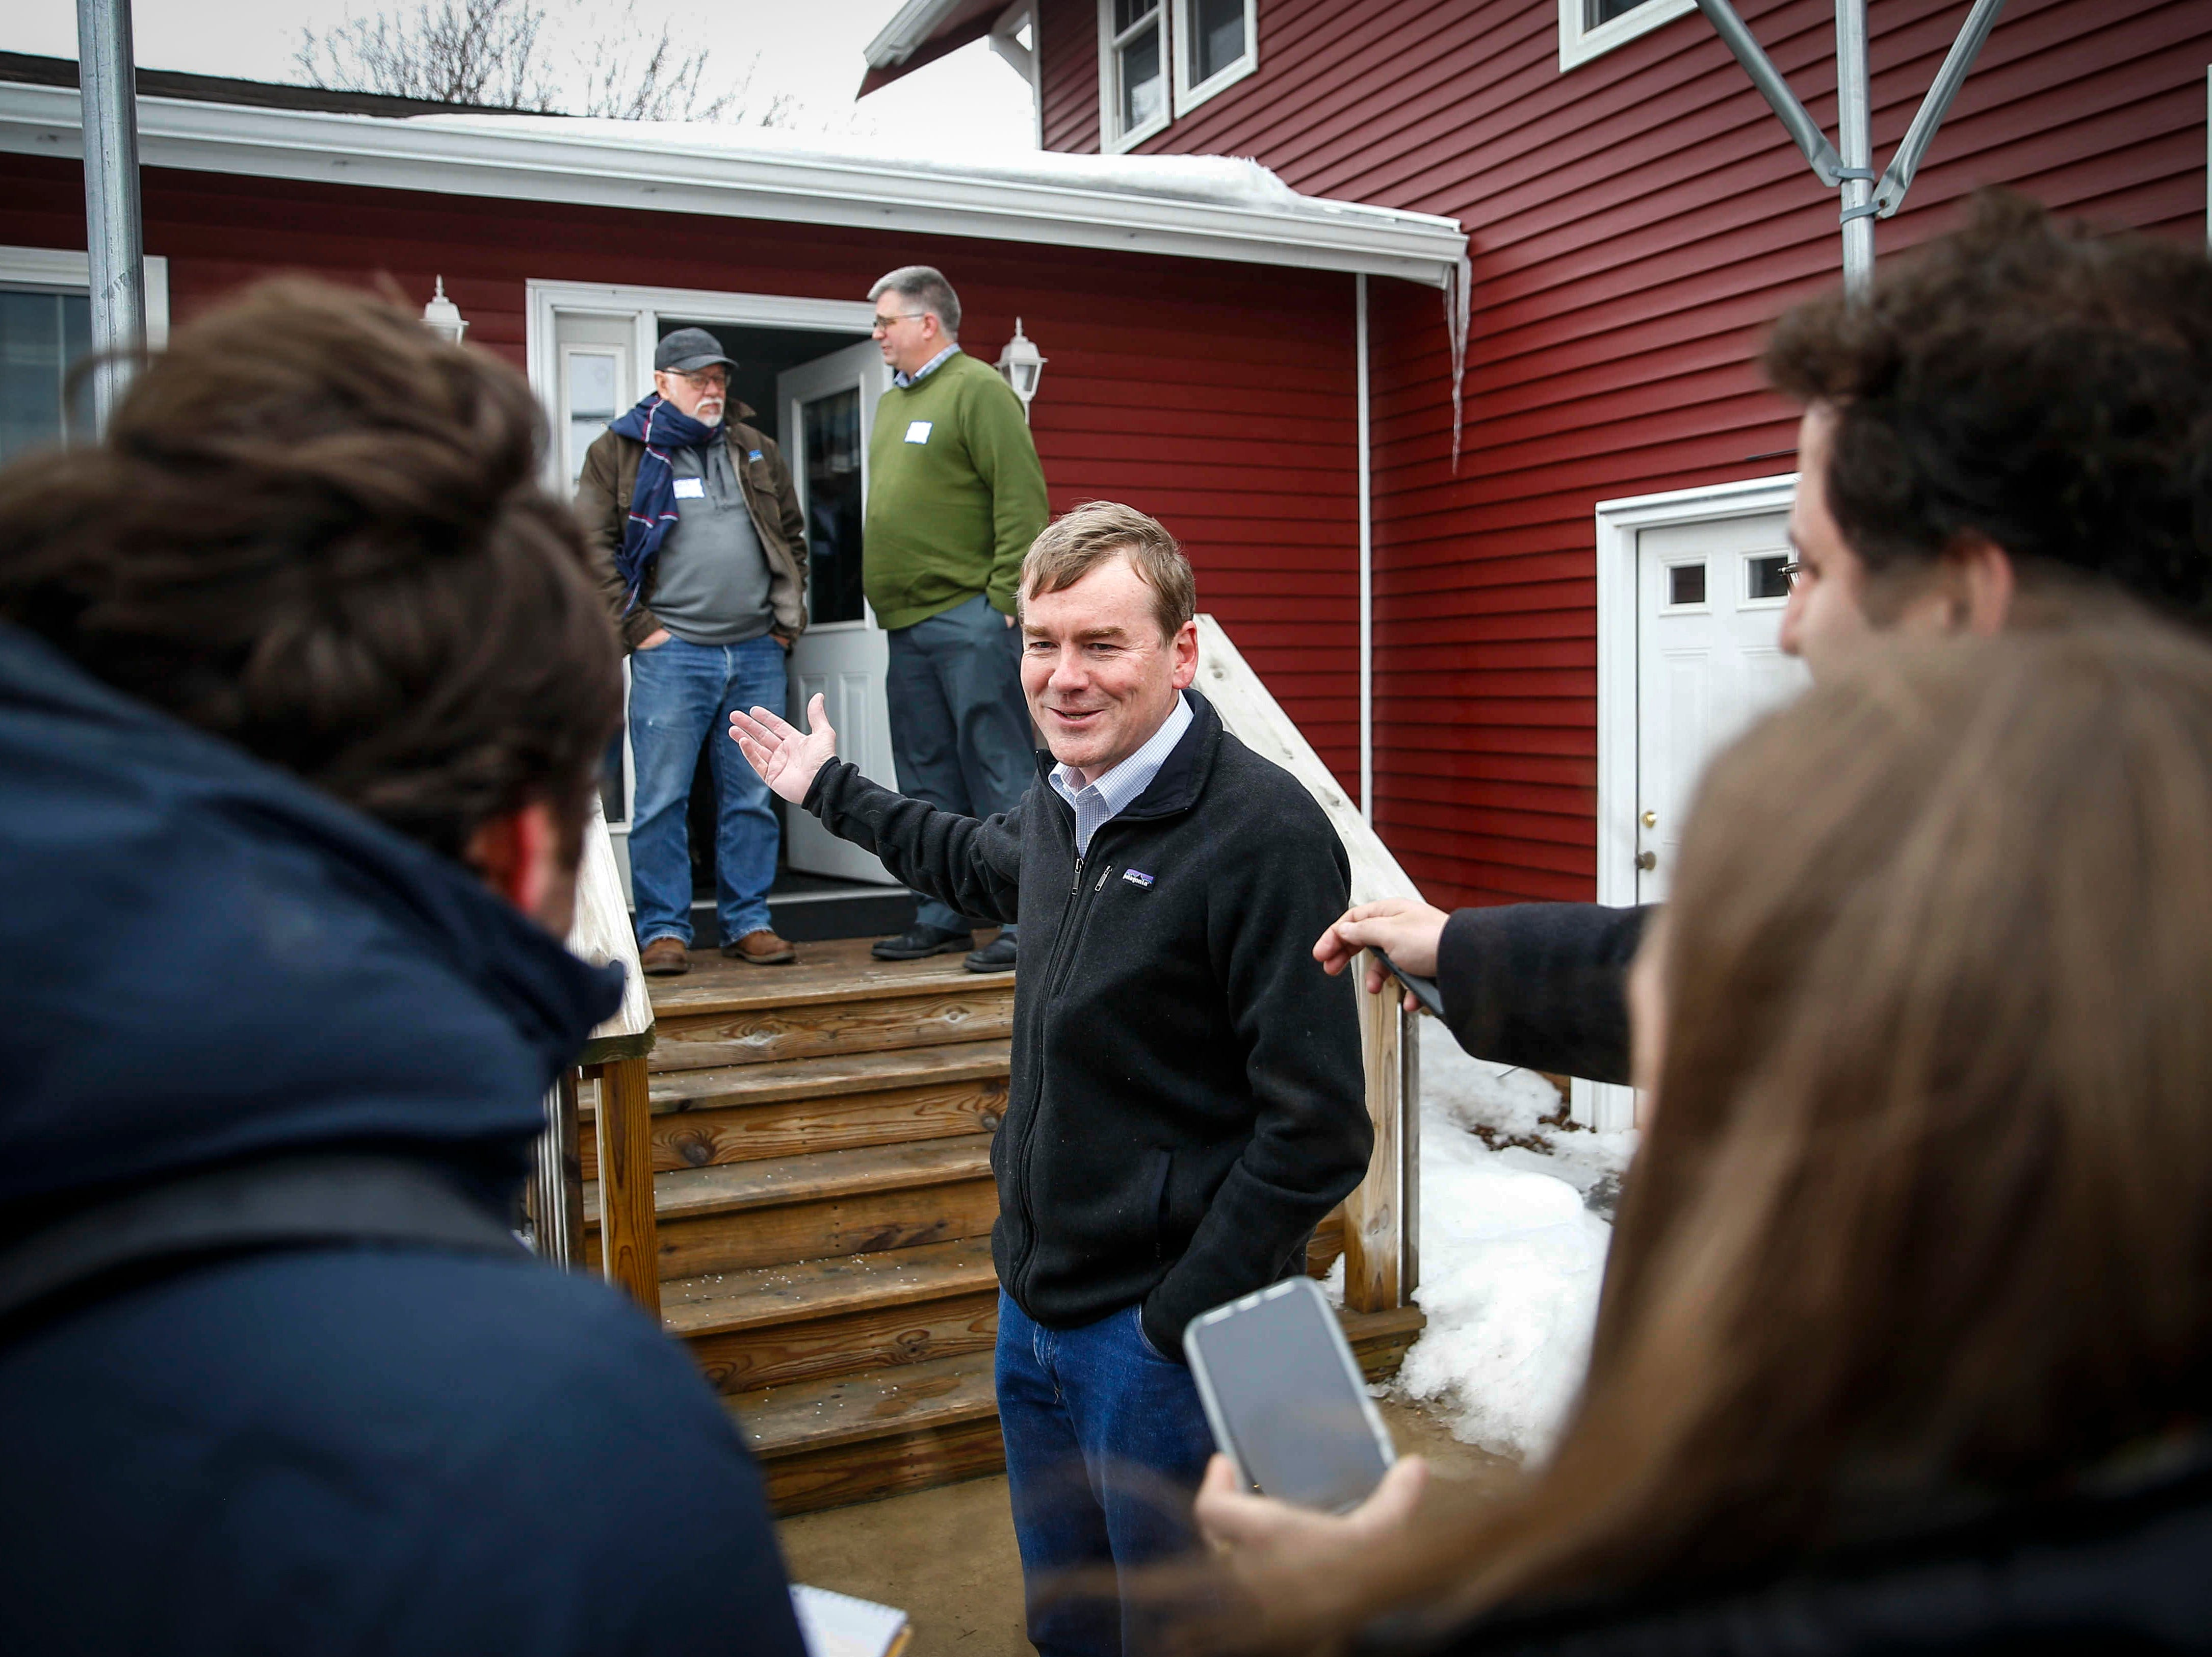 United States Sen. Michael Bennet from Colorado talks to members of the media on Saturday, Feb. 23, 2019, at the Lehman farm in rural Polk City.